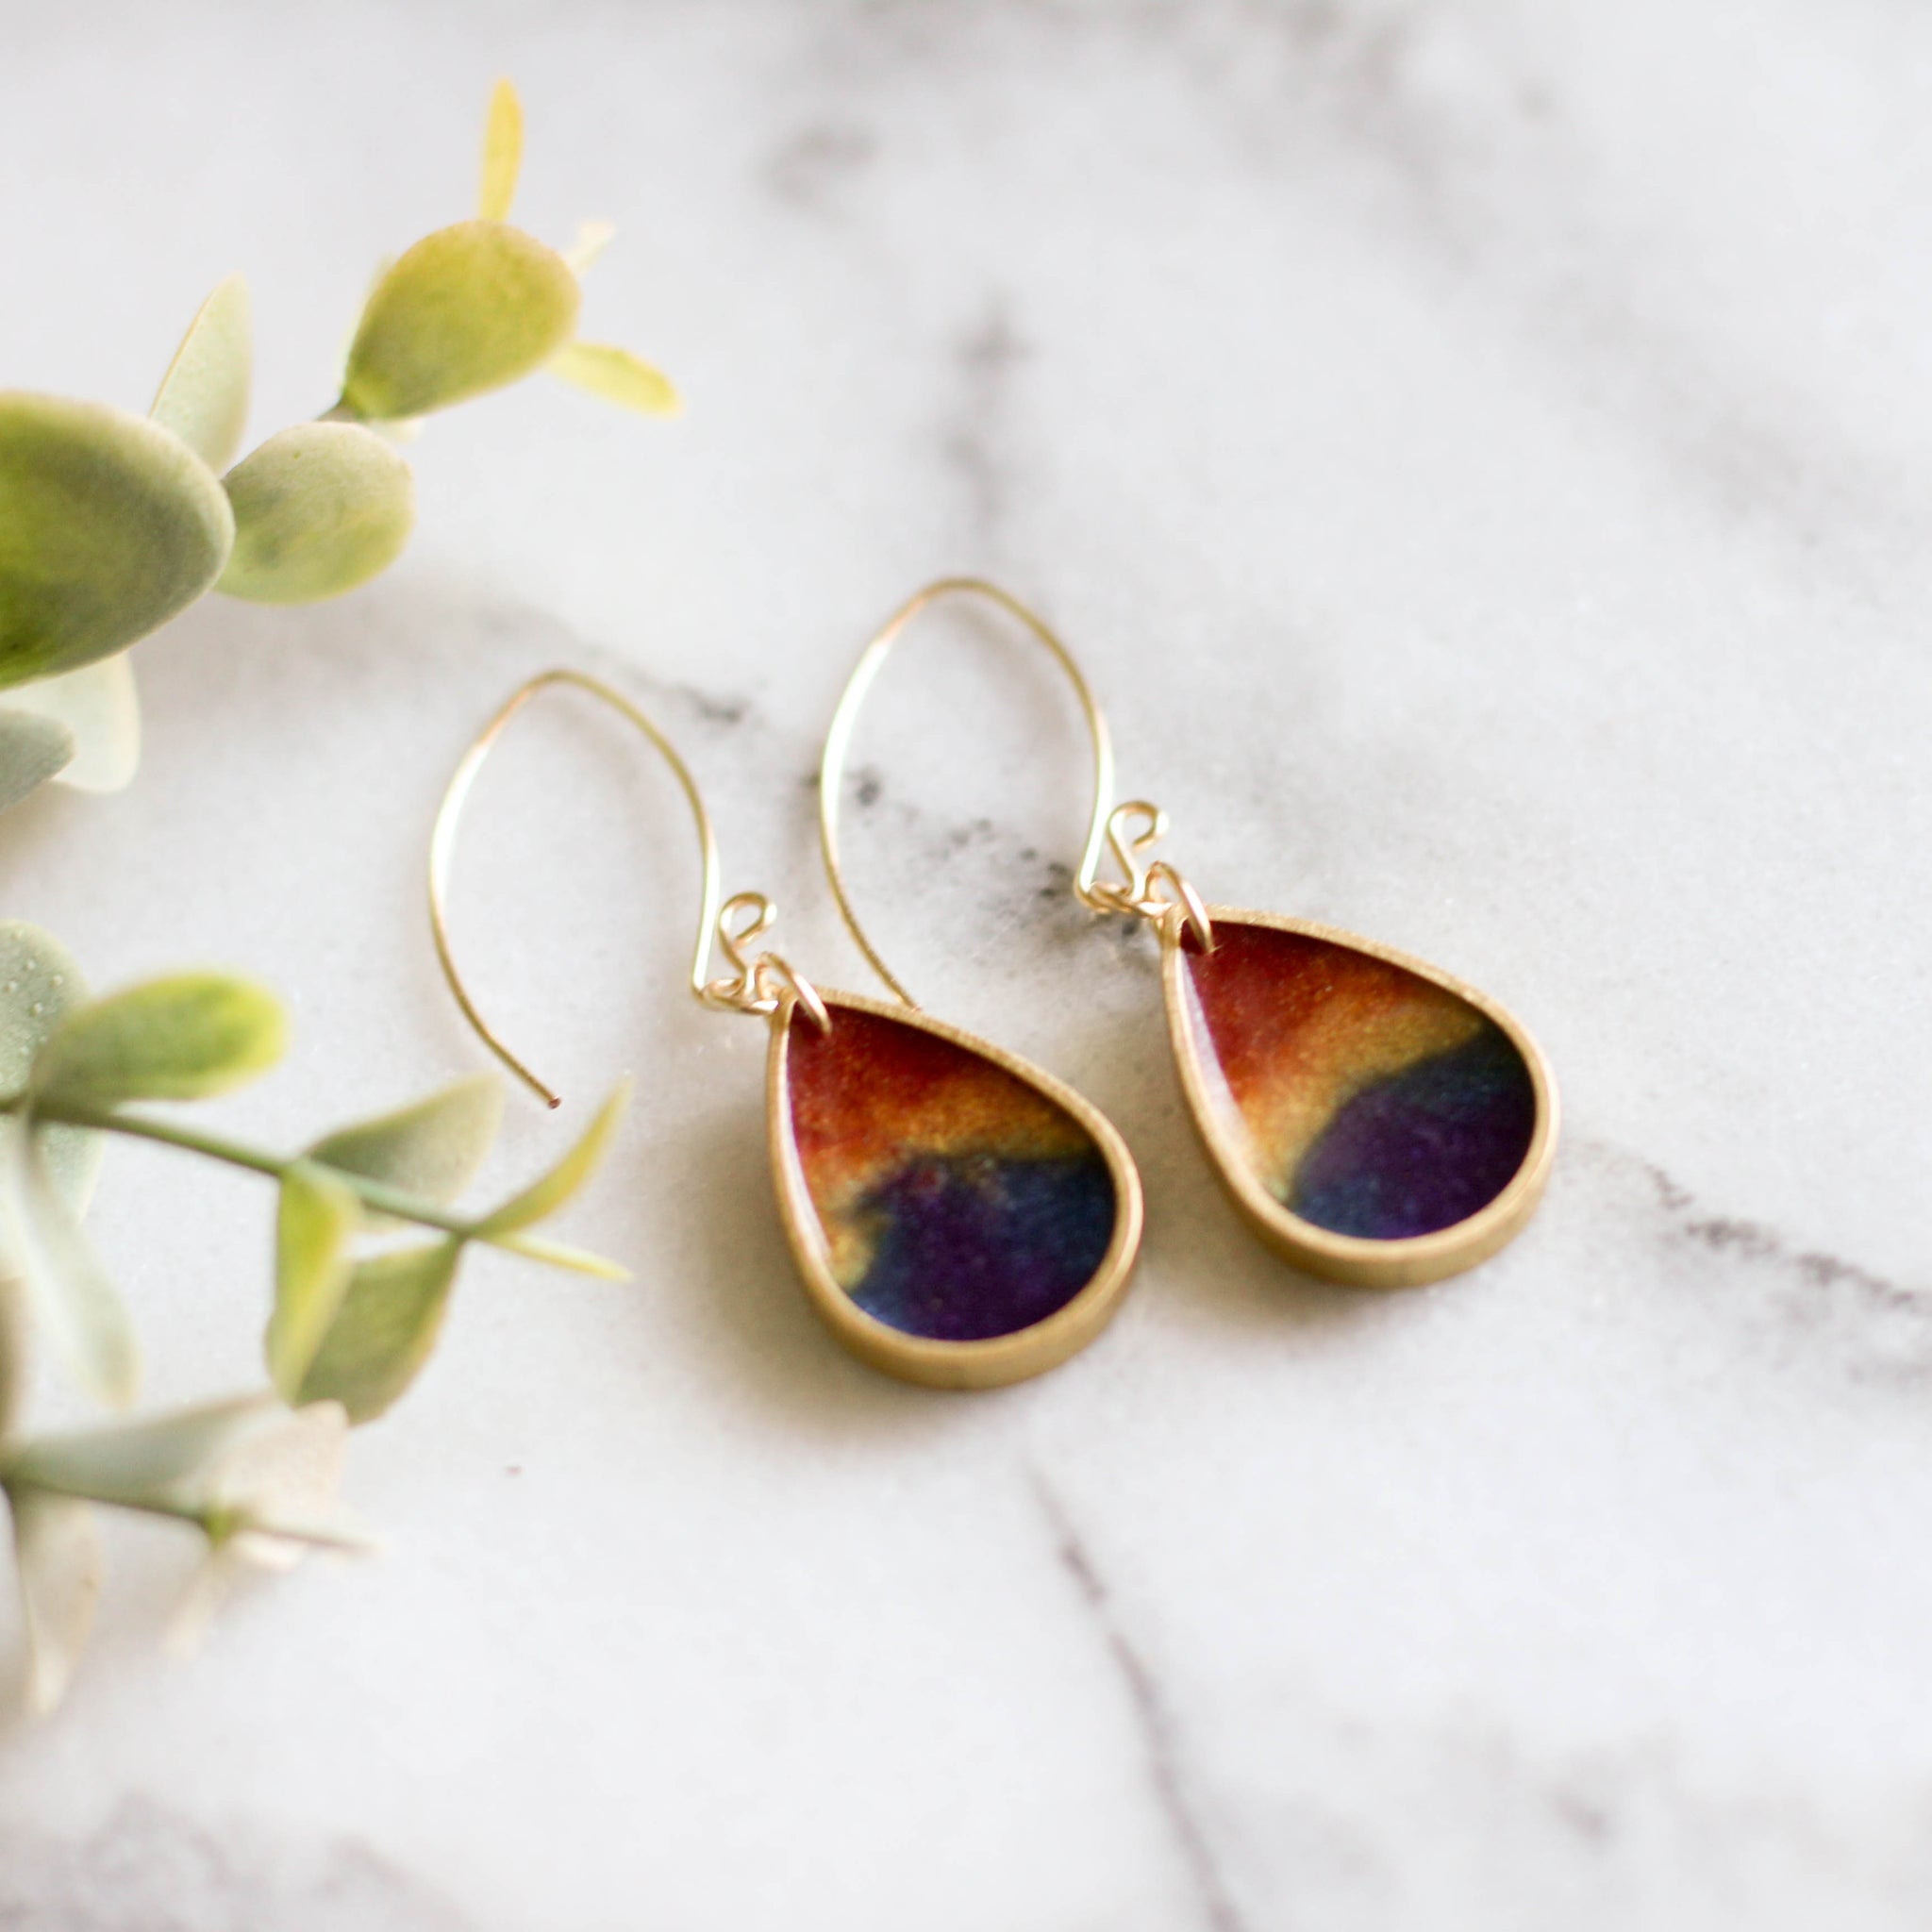 Rainbow Raindrop Brass Earrings - No Man's Land Artifacts